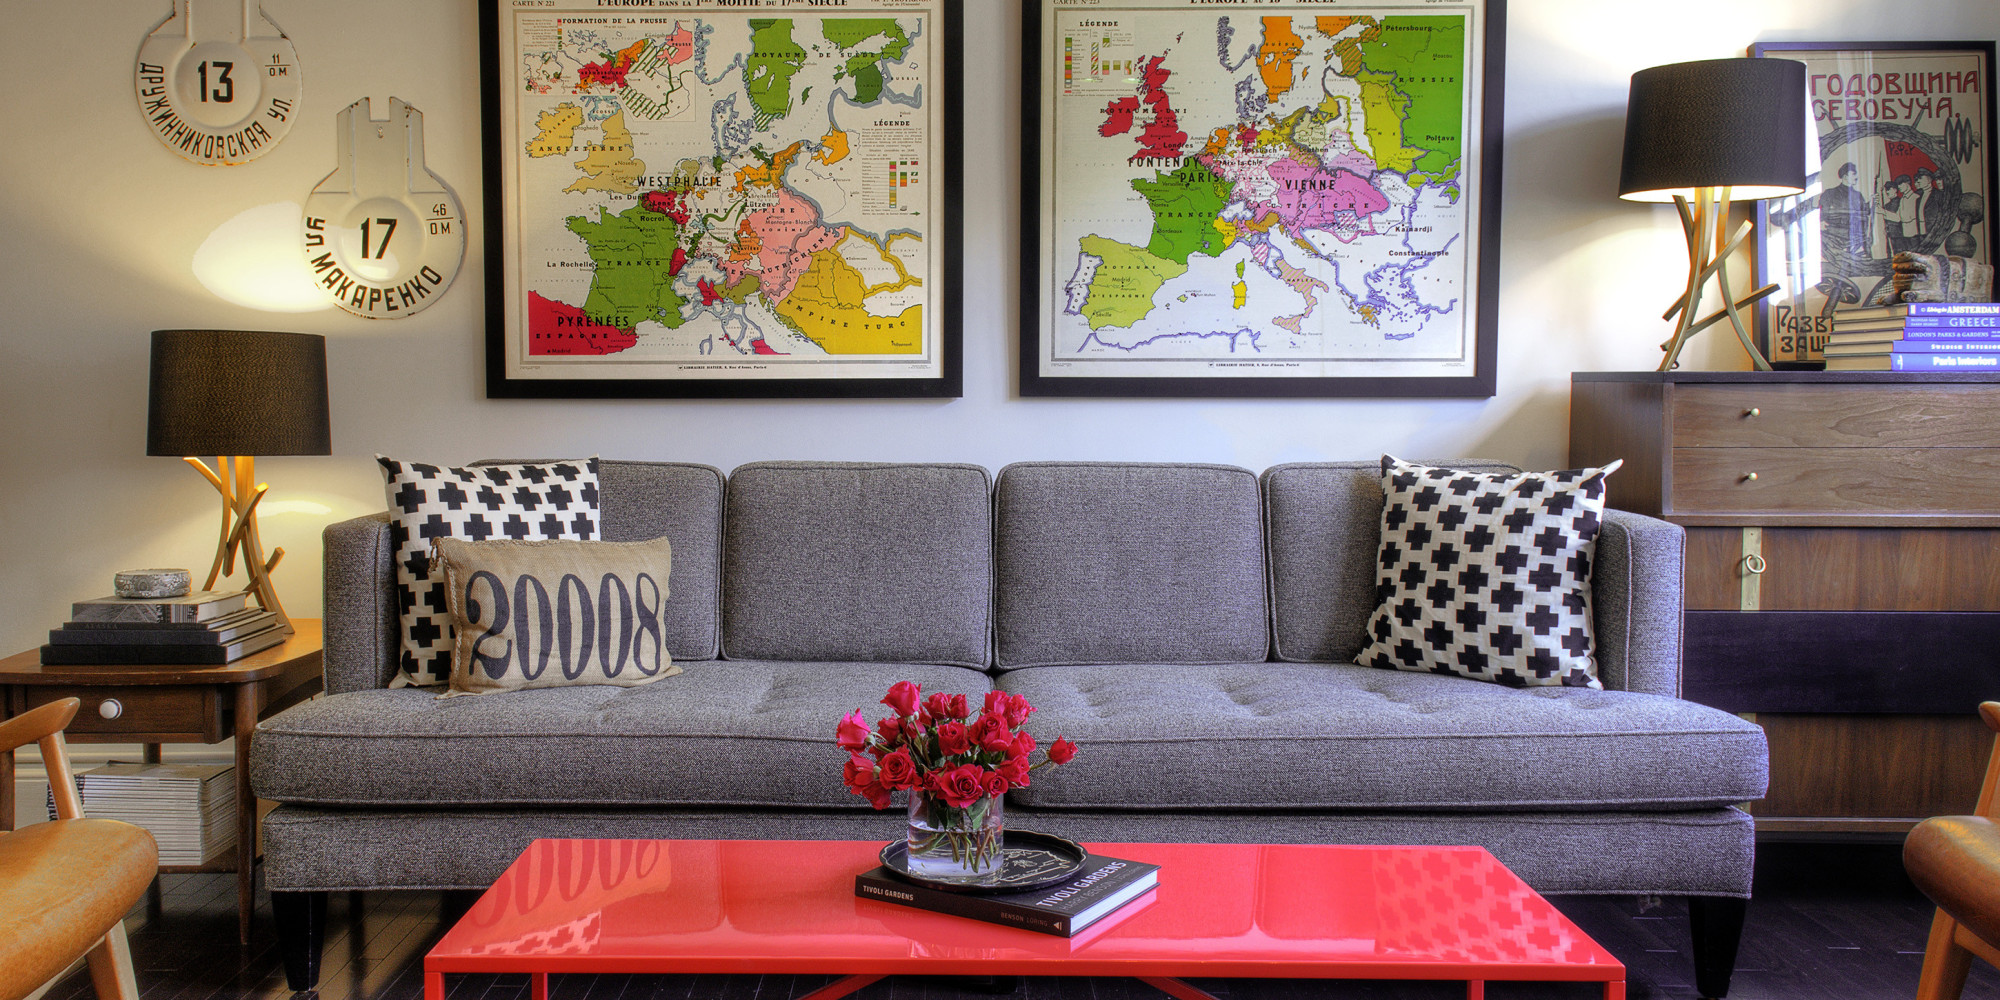 50 Ways To Update Your Living Room For $50 Less PHOTOS